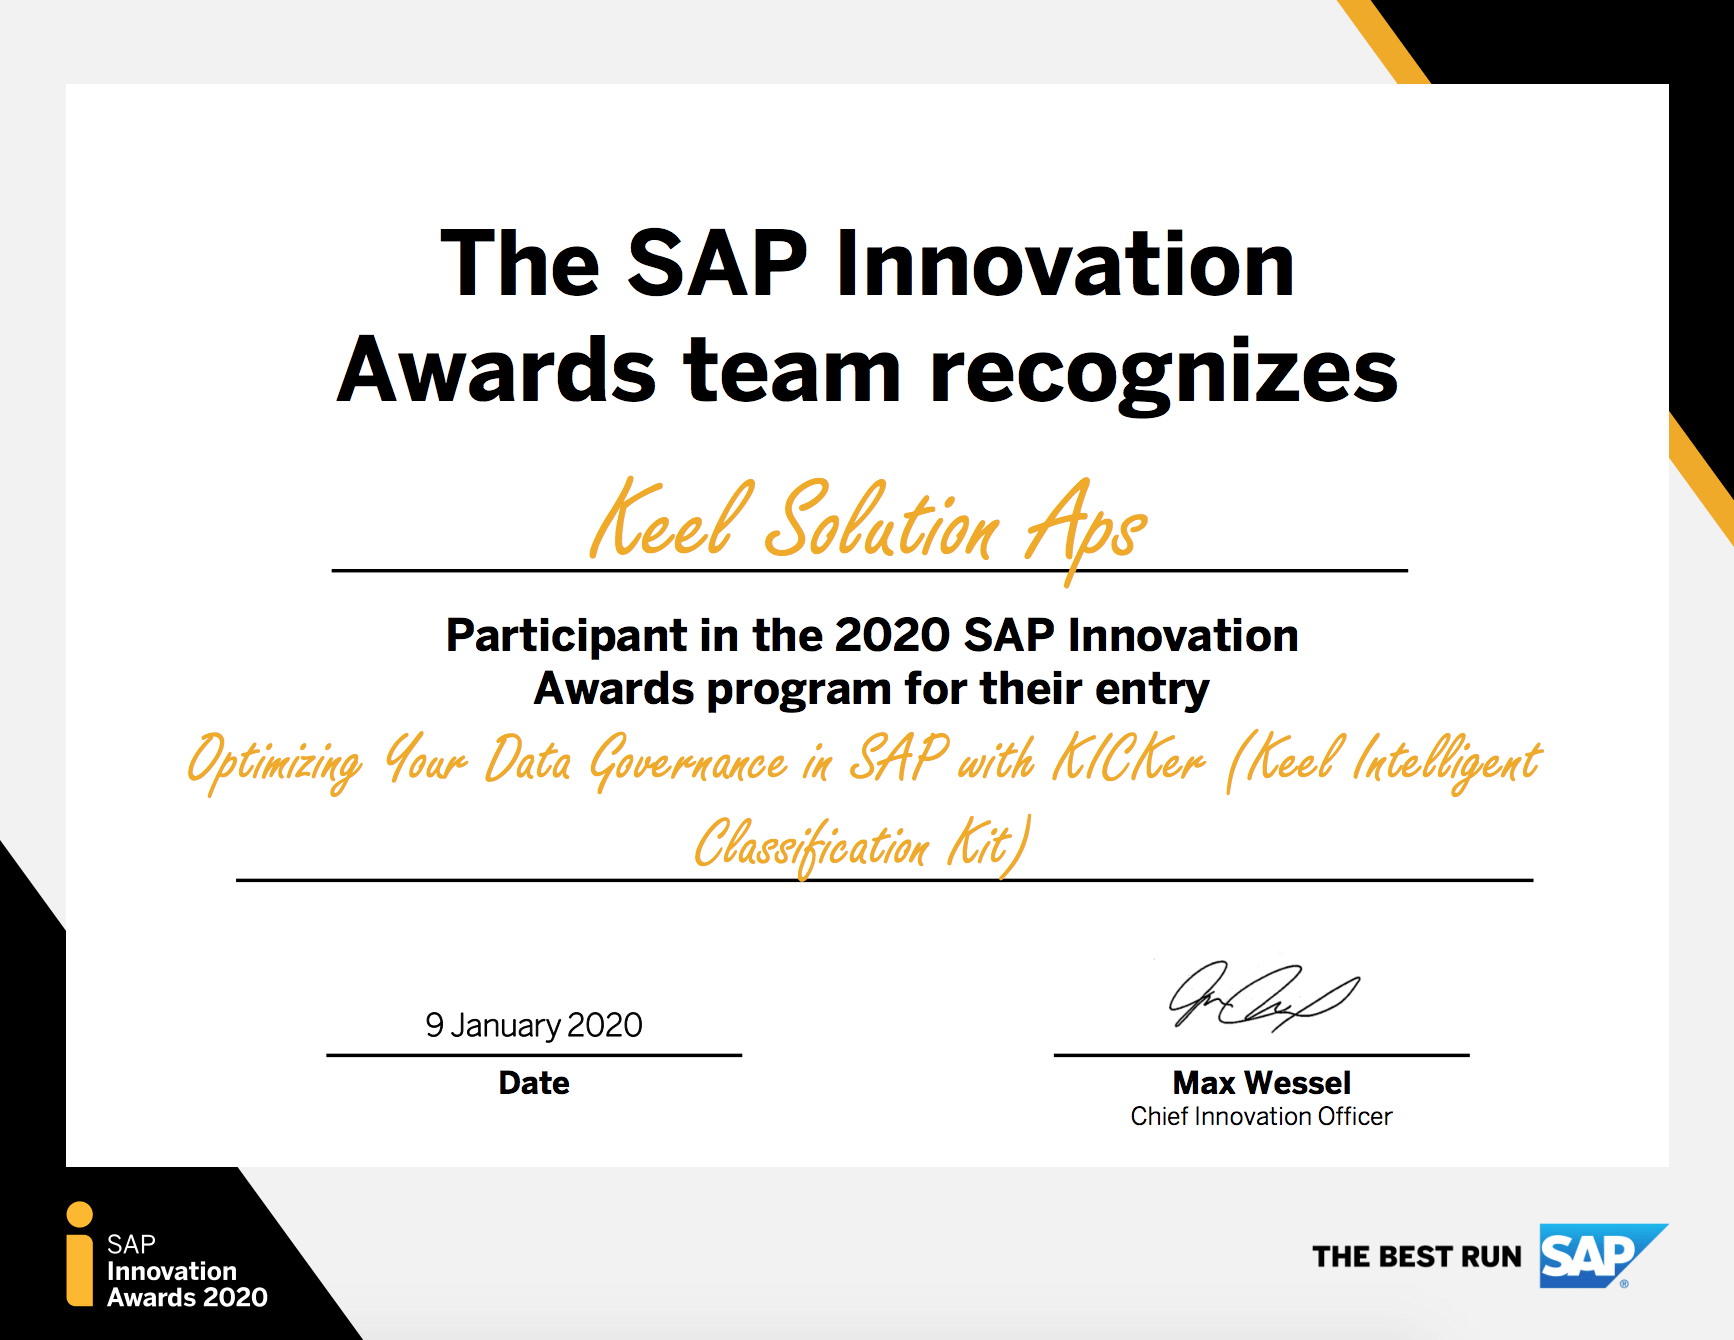 SAP Innovation Awards 2020 Keel